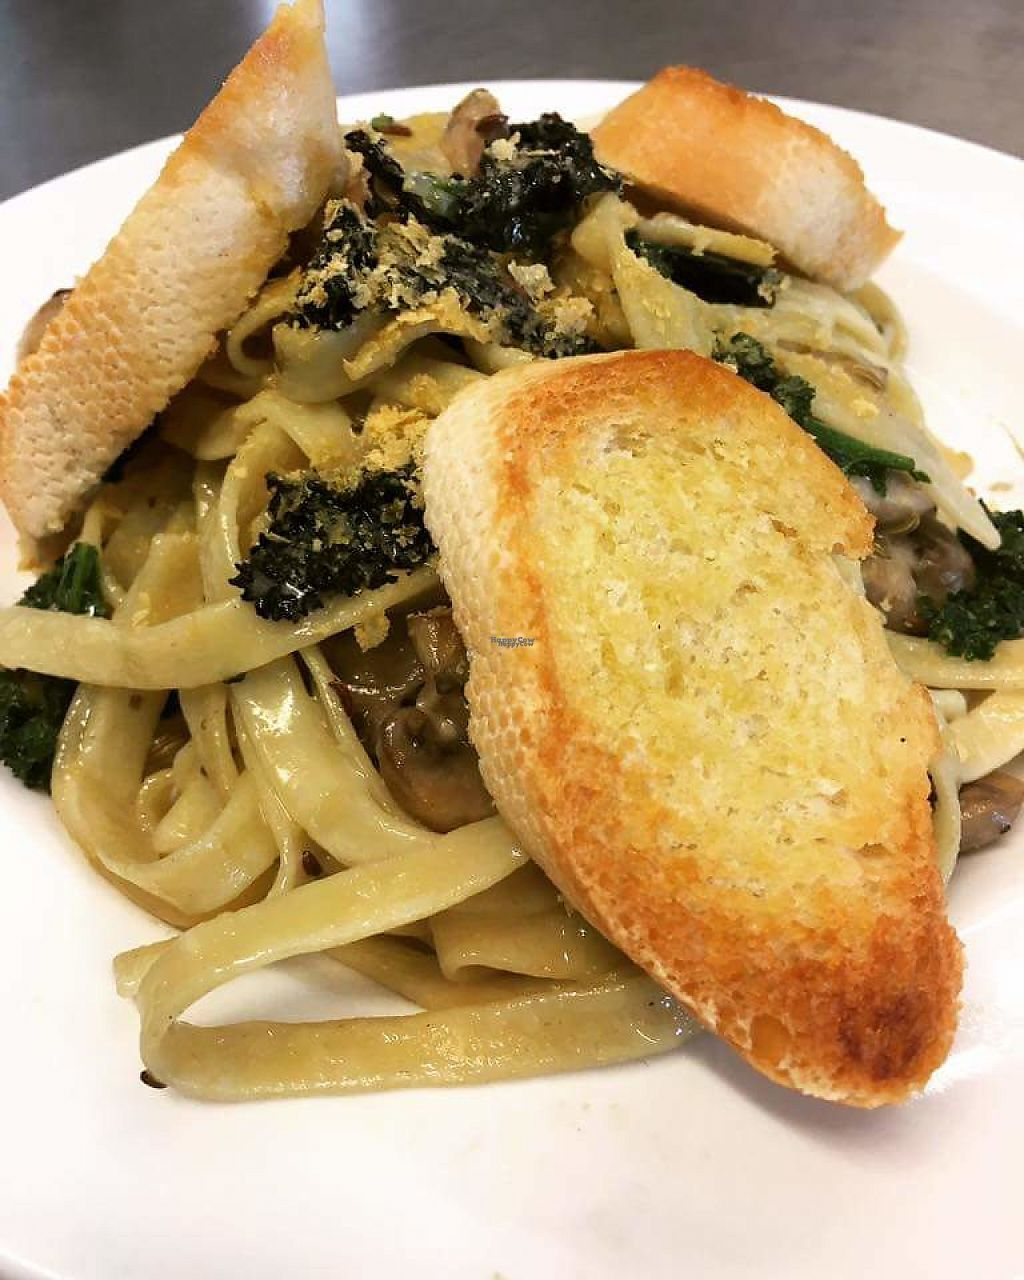 """Photo of Cafe Britannia  by <a href=""""/members/profile/community5"""">community5</a> <br/>Creamy vegan pasta <br/> April 12, 2017  - <a href='/contact/abuse/image/90278/247169'>Report</a>"""